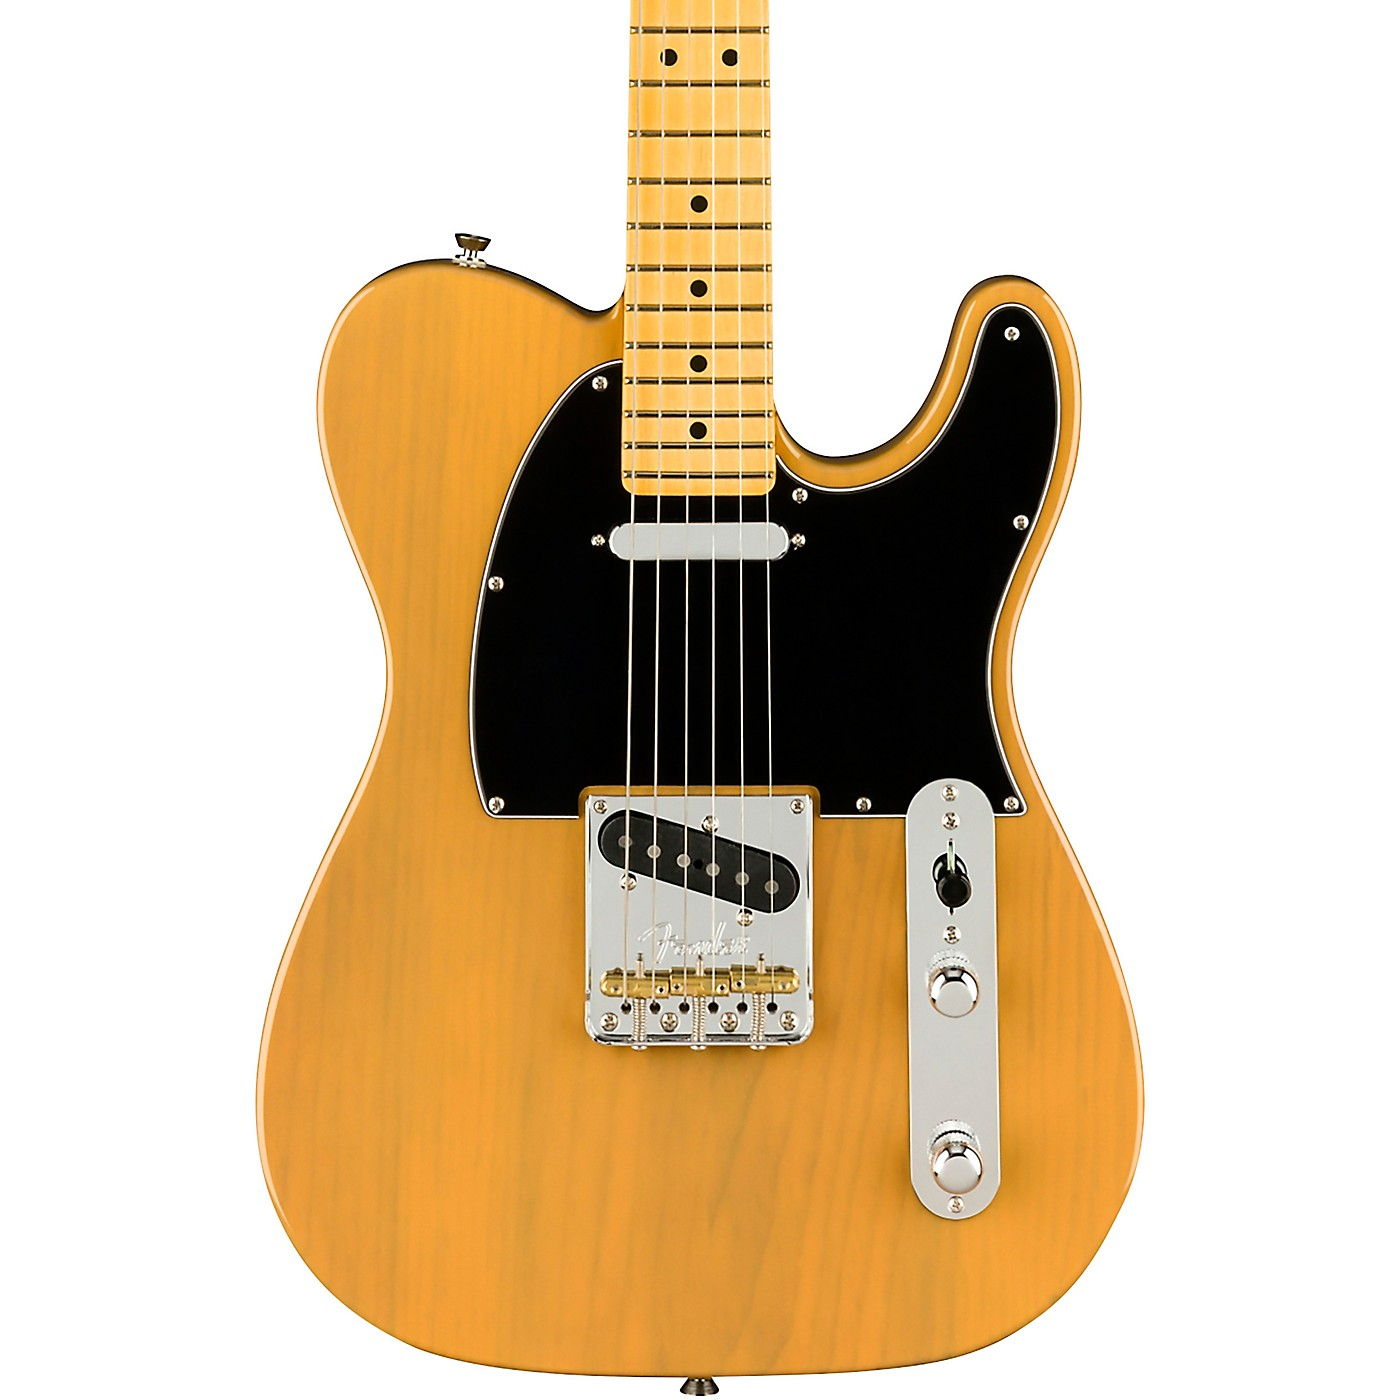 Fender American Professional II Telecaster Maple Fingerboard Electric Guitar thumbnail